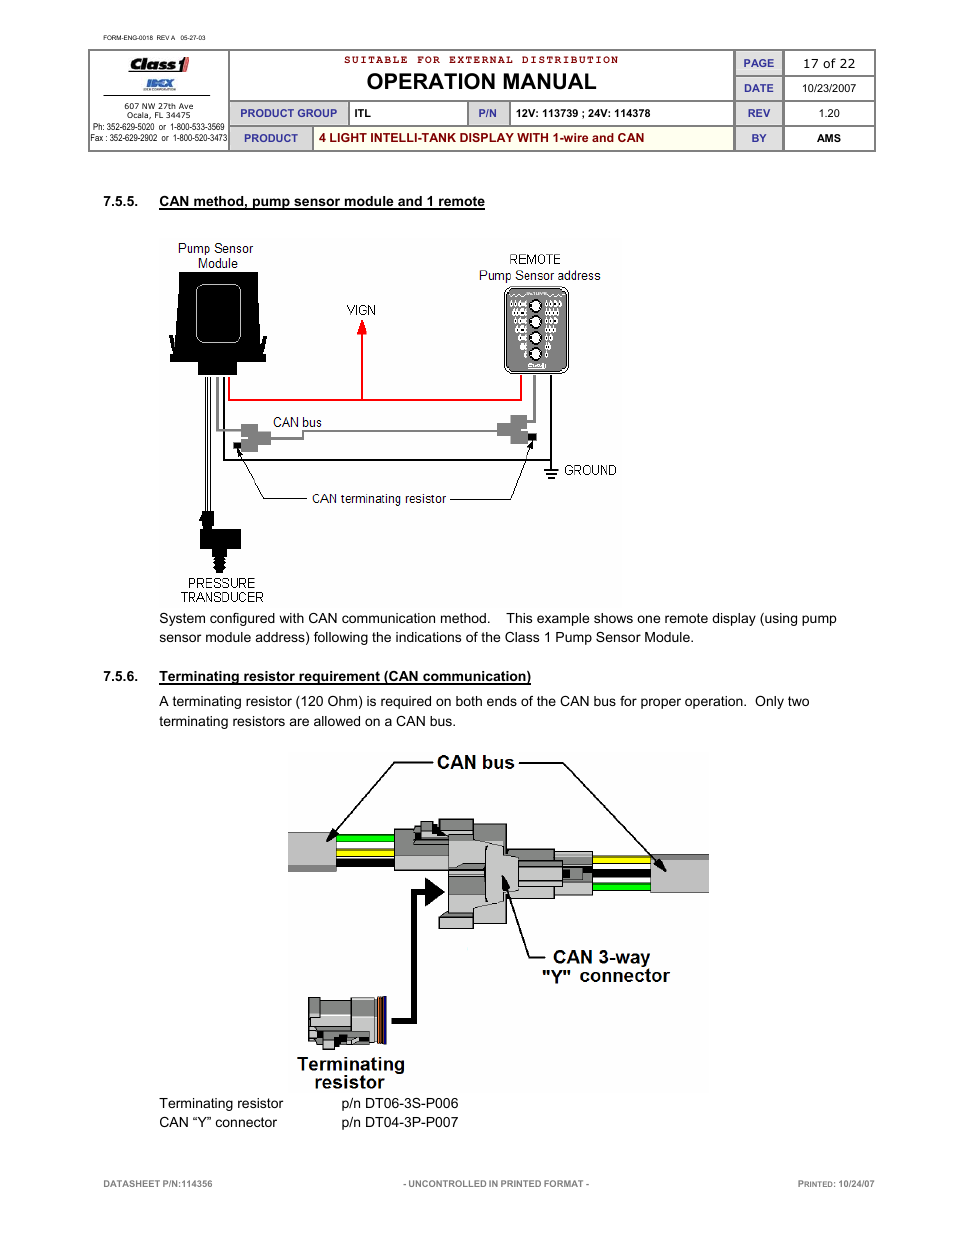 Operation manual | Class1 114356 - ITL 4LT with 1-wire and CAN COM ...